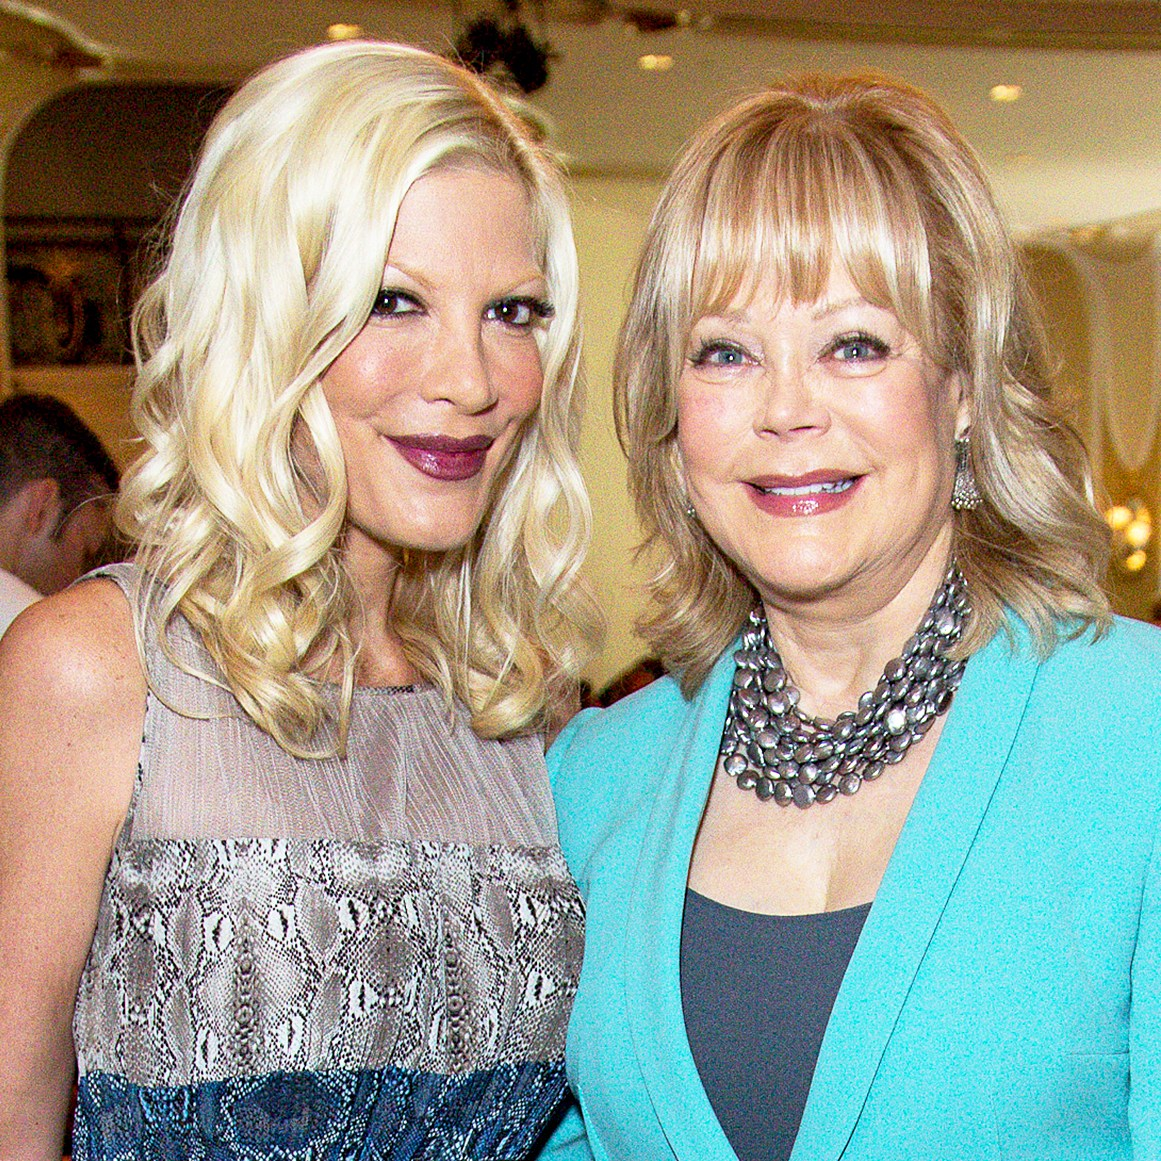 Tori Spelling and Candy Spelling